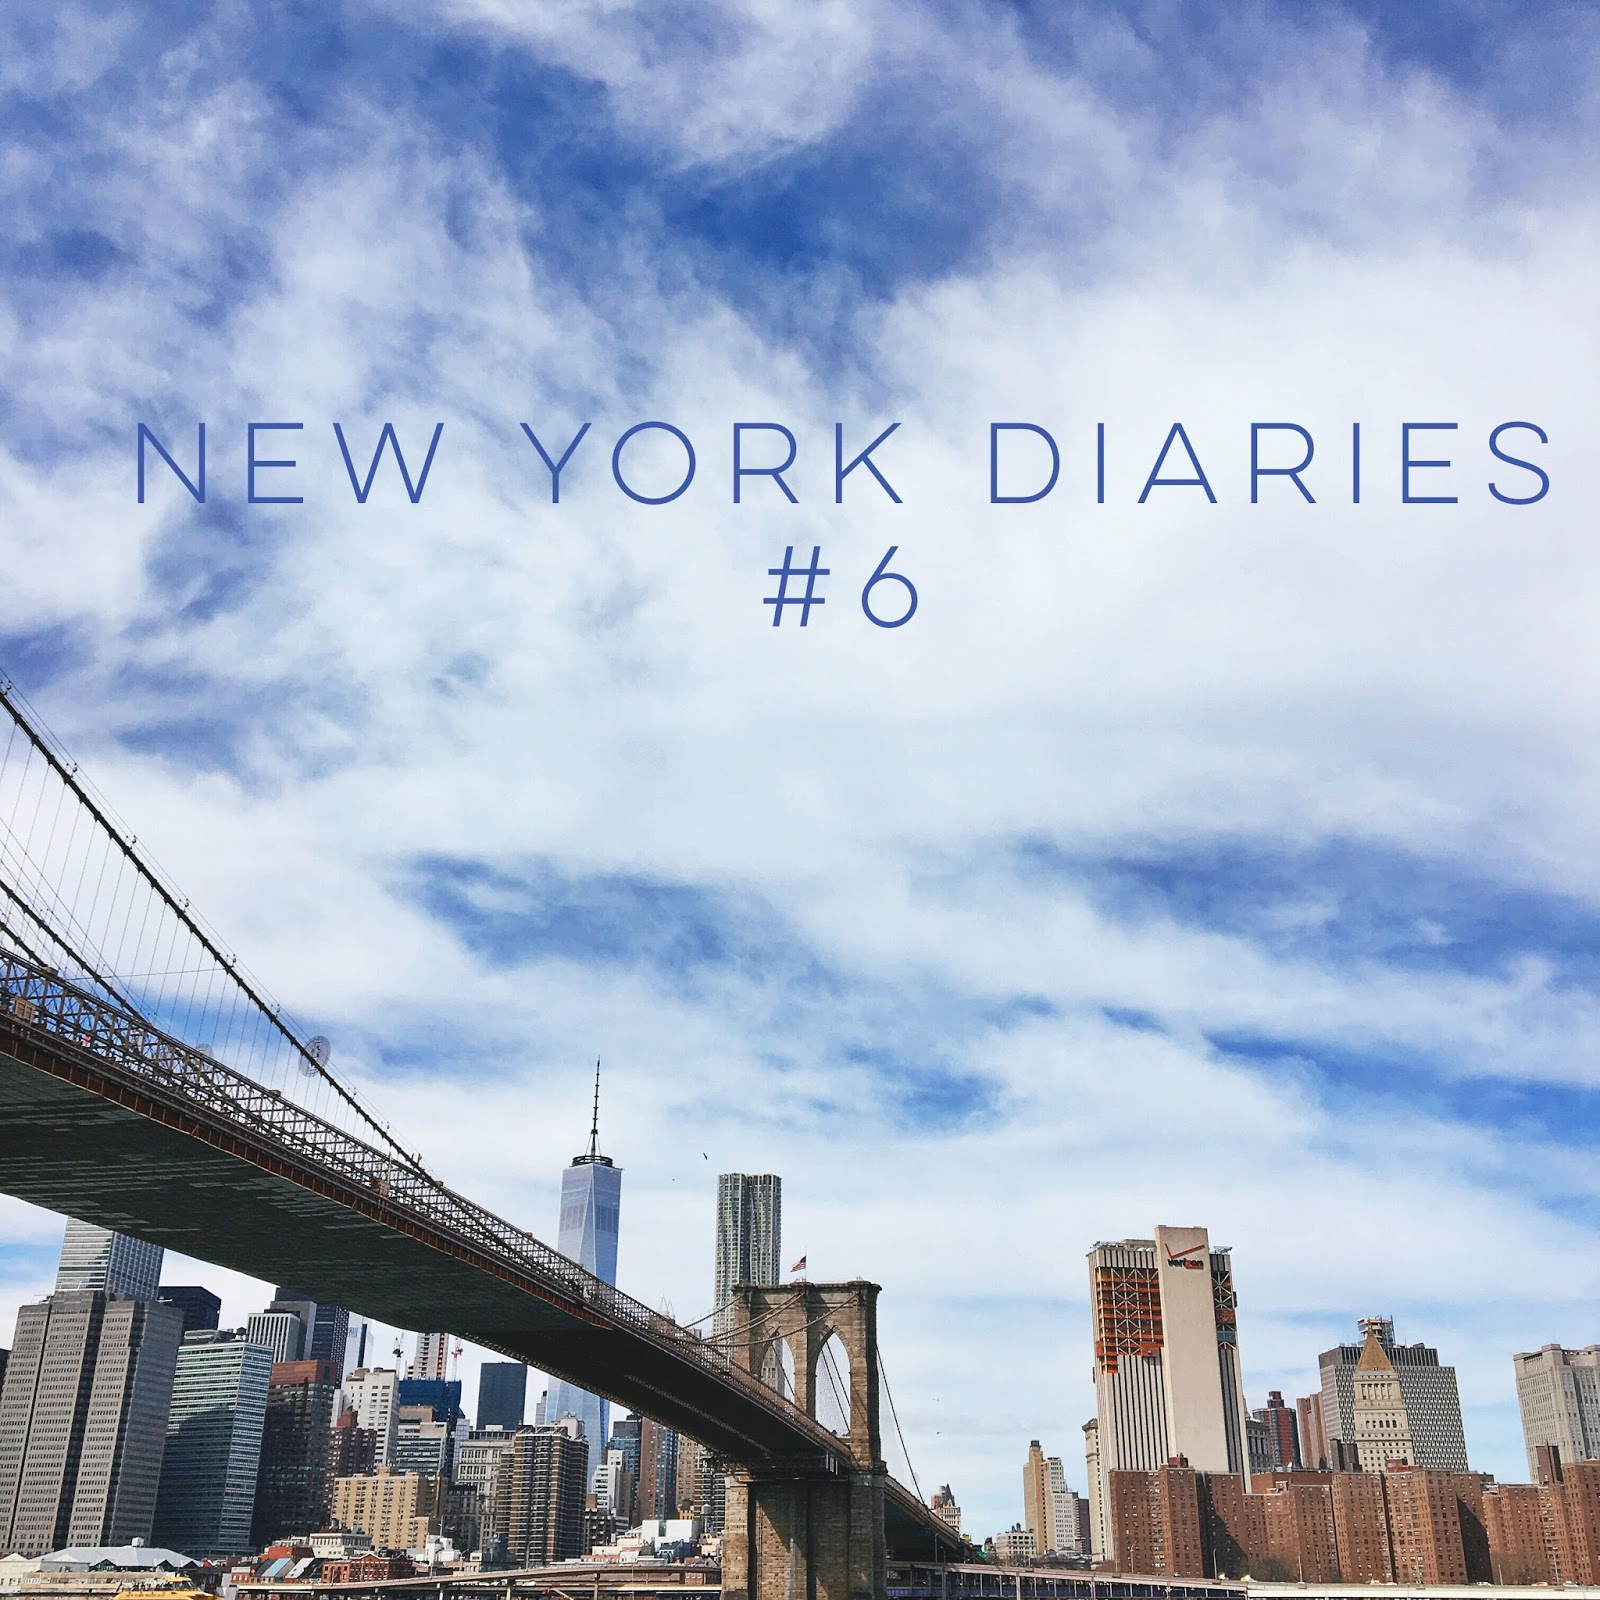 The New York Diaries #6